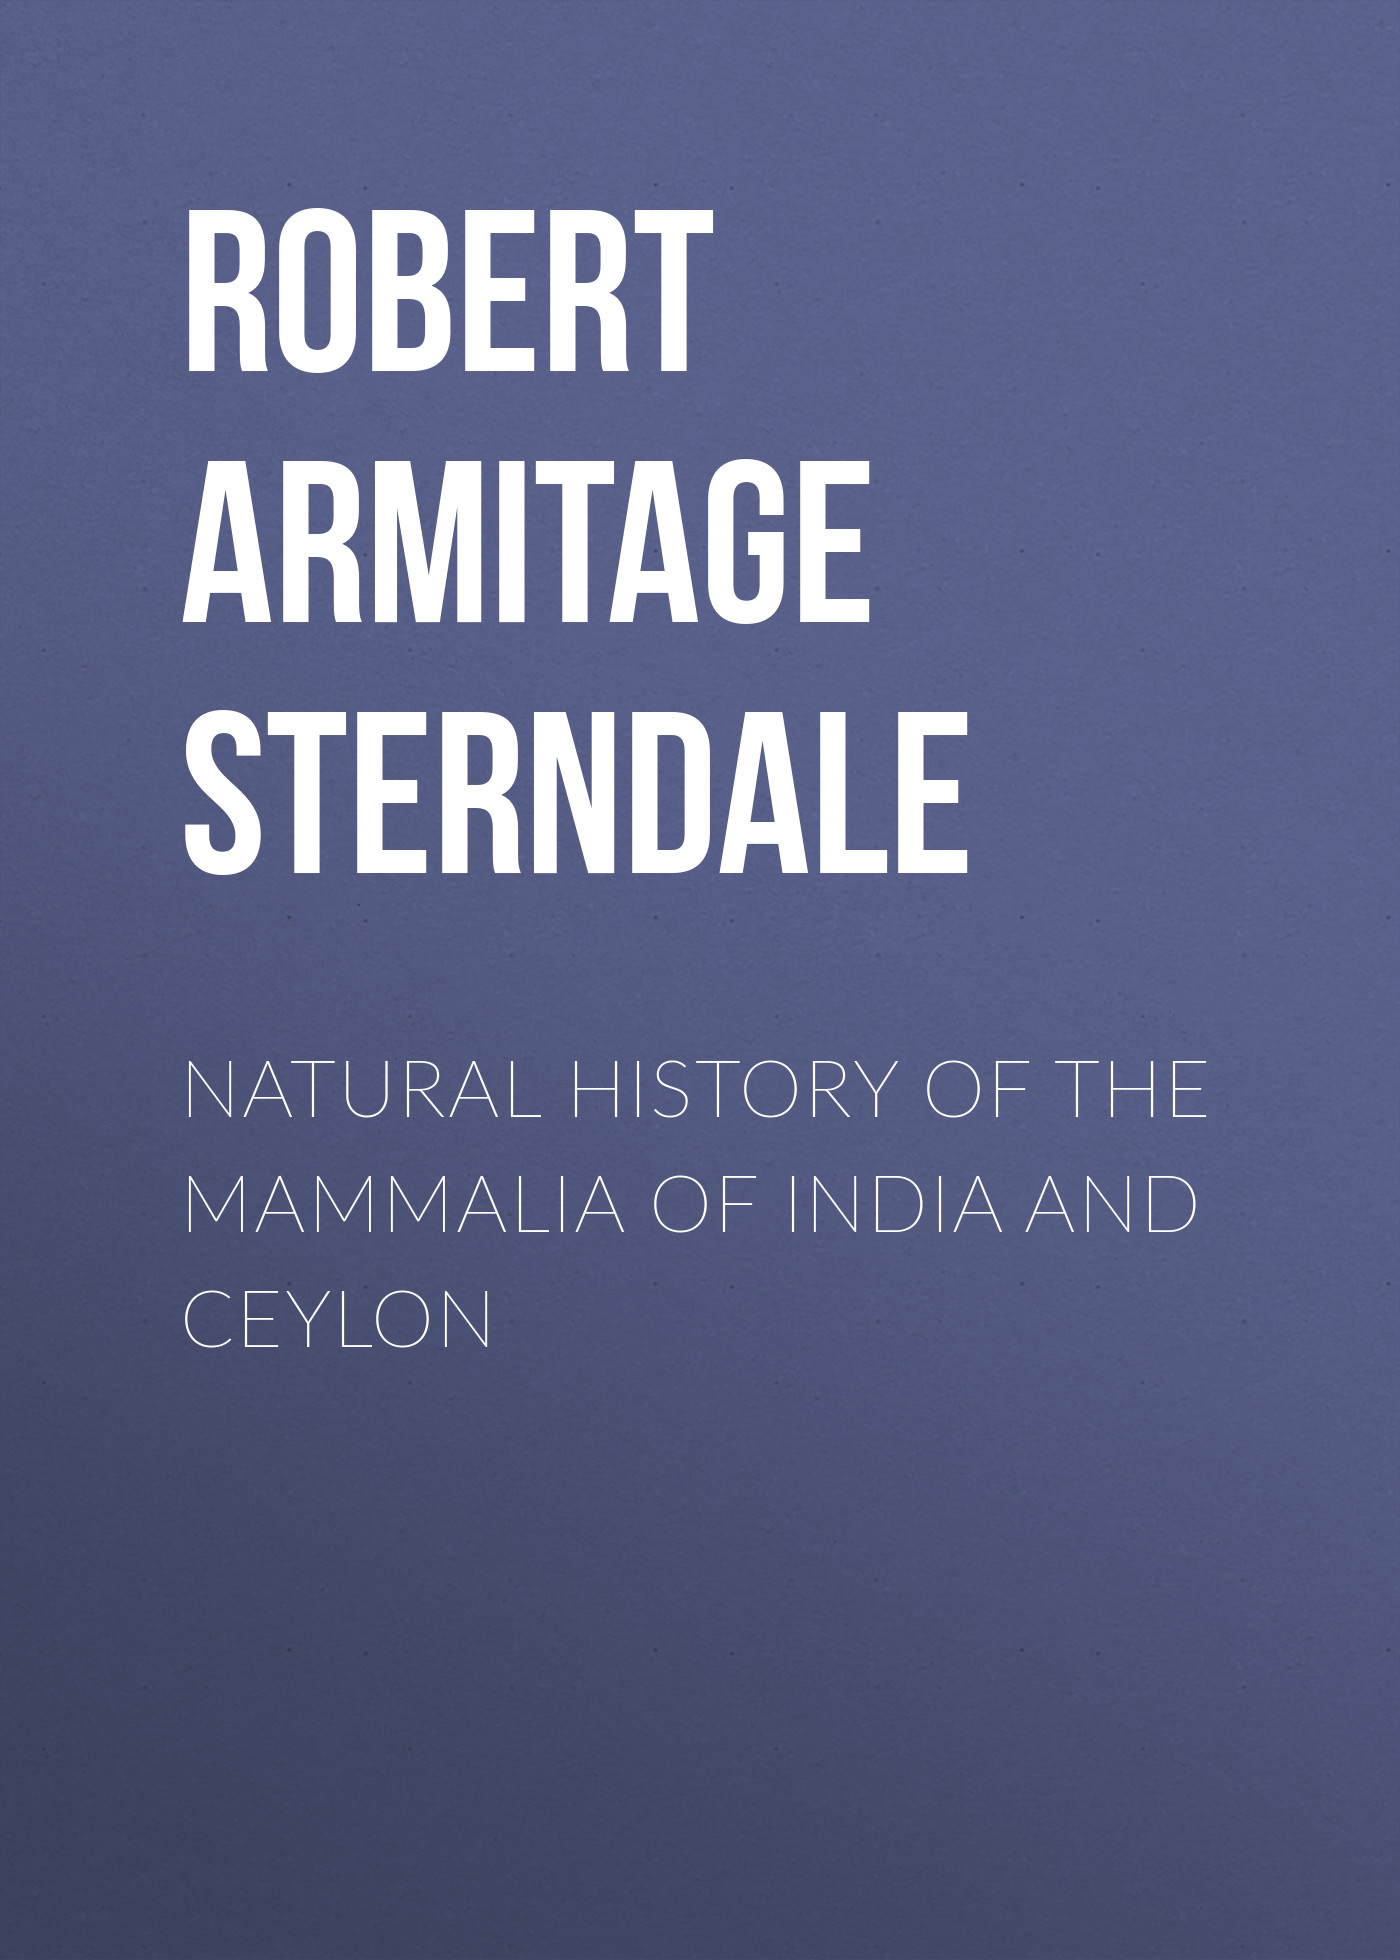 Robert Armitage Sterndale Natural History of the Mammalia of India and Ceylon robert vane russell the tribes and castes of the central provinces of india volume 3